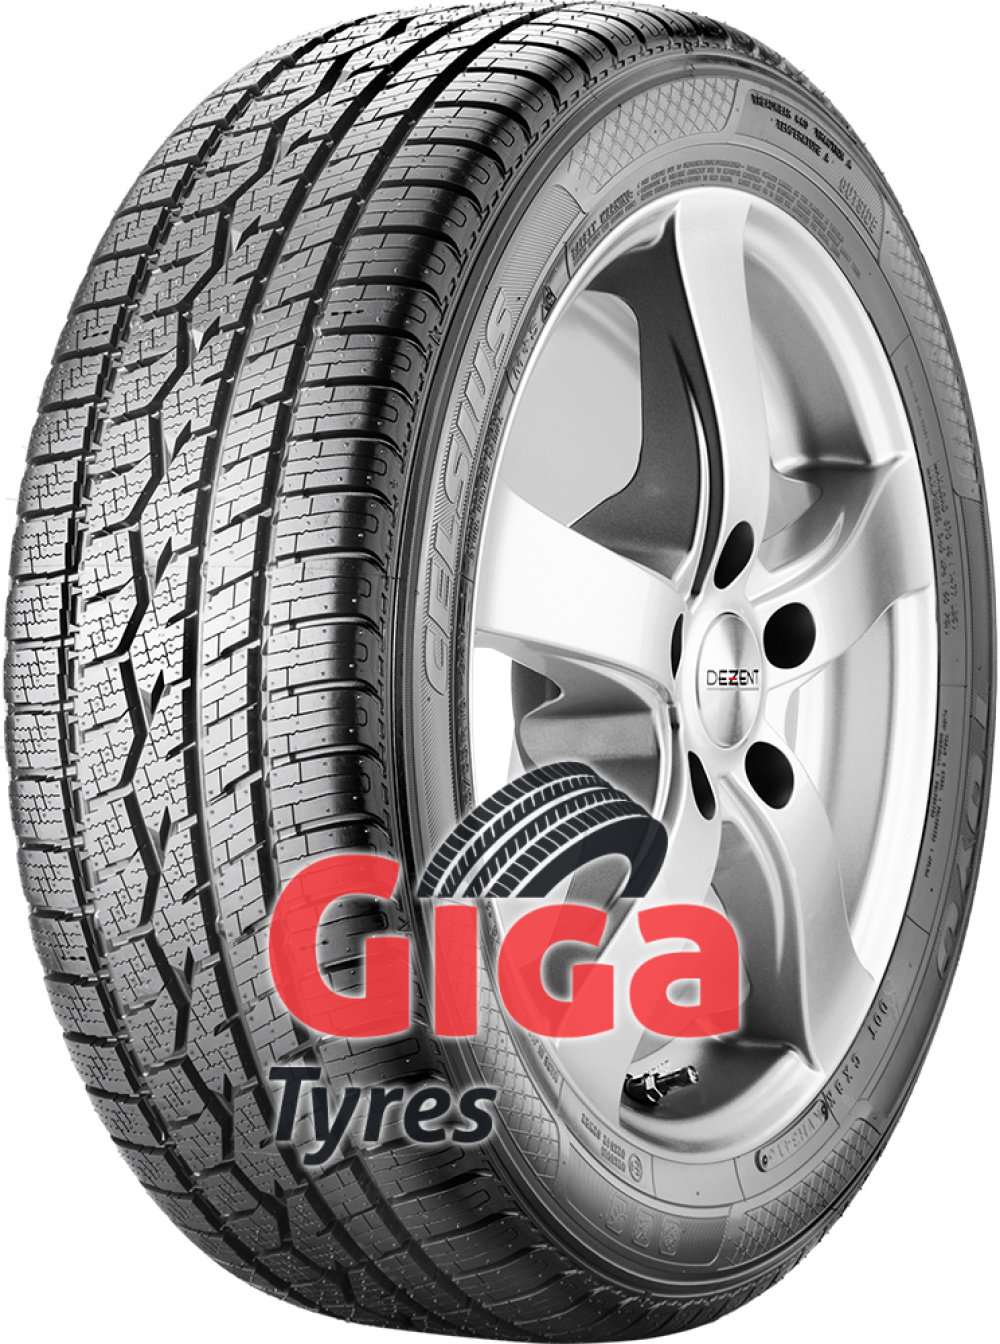 Toyo Celsius ( 225/45 R17 94V XL , with rim protection ridge (FSL) )